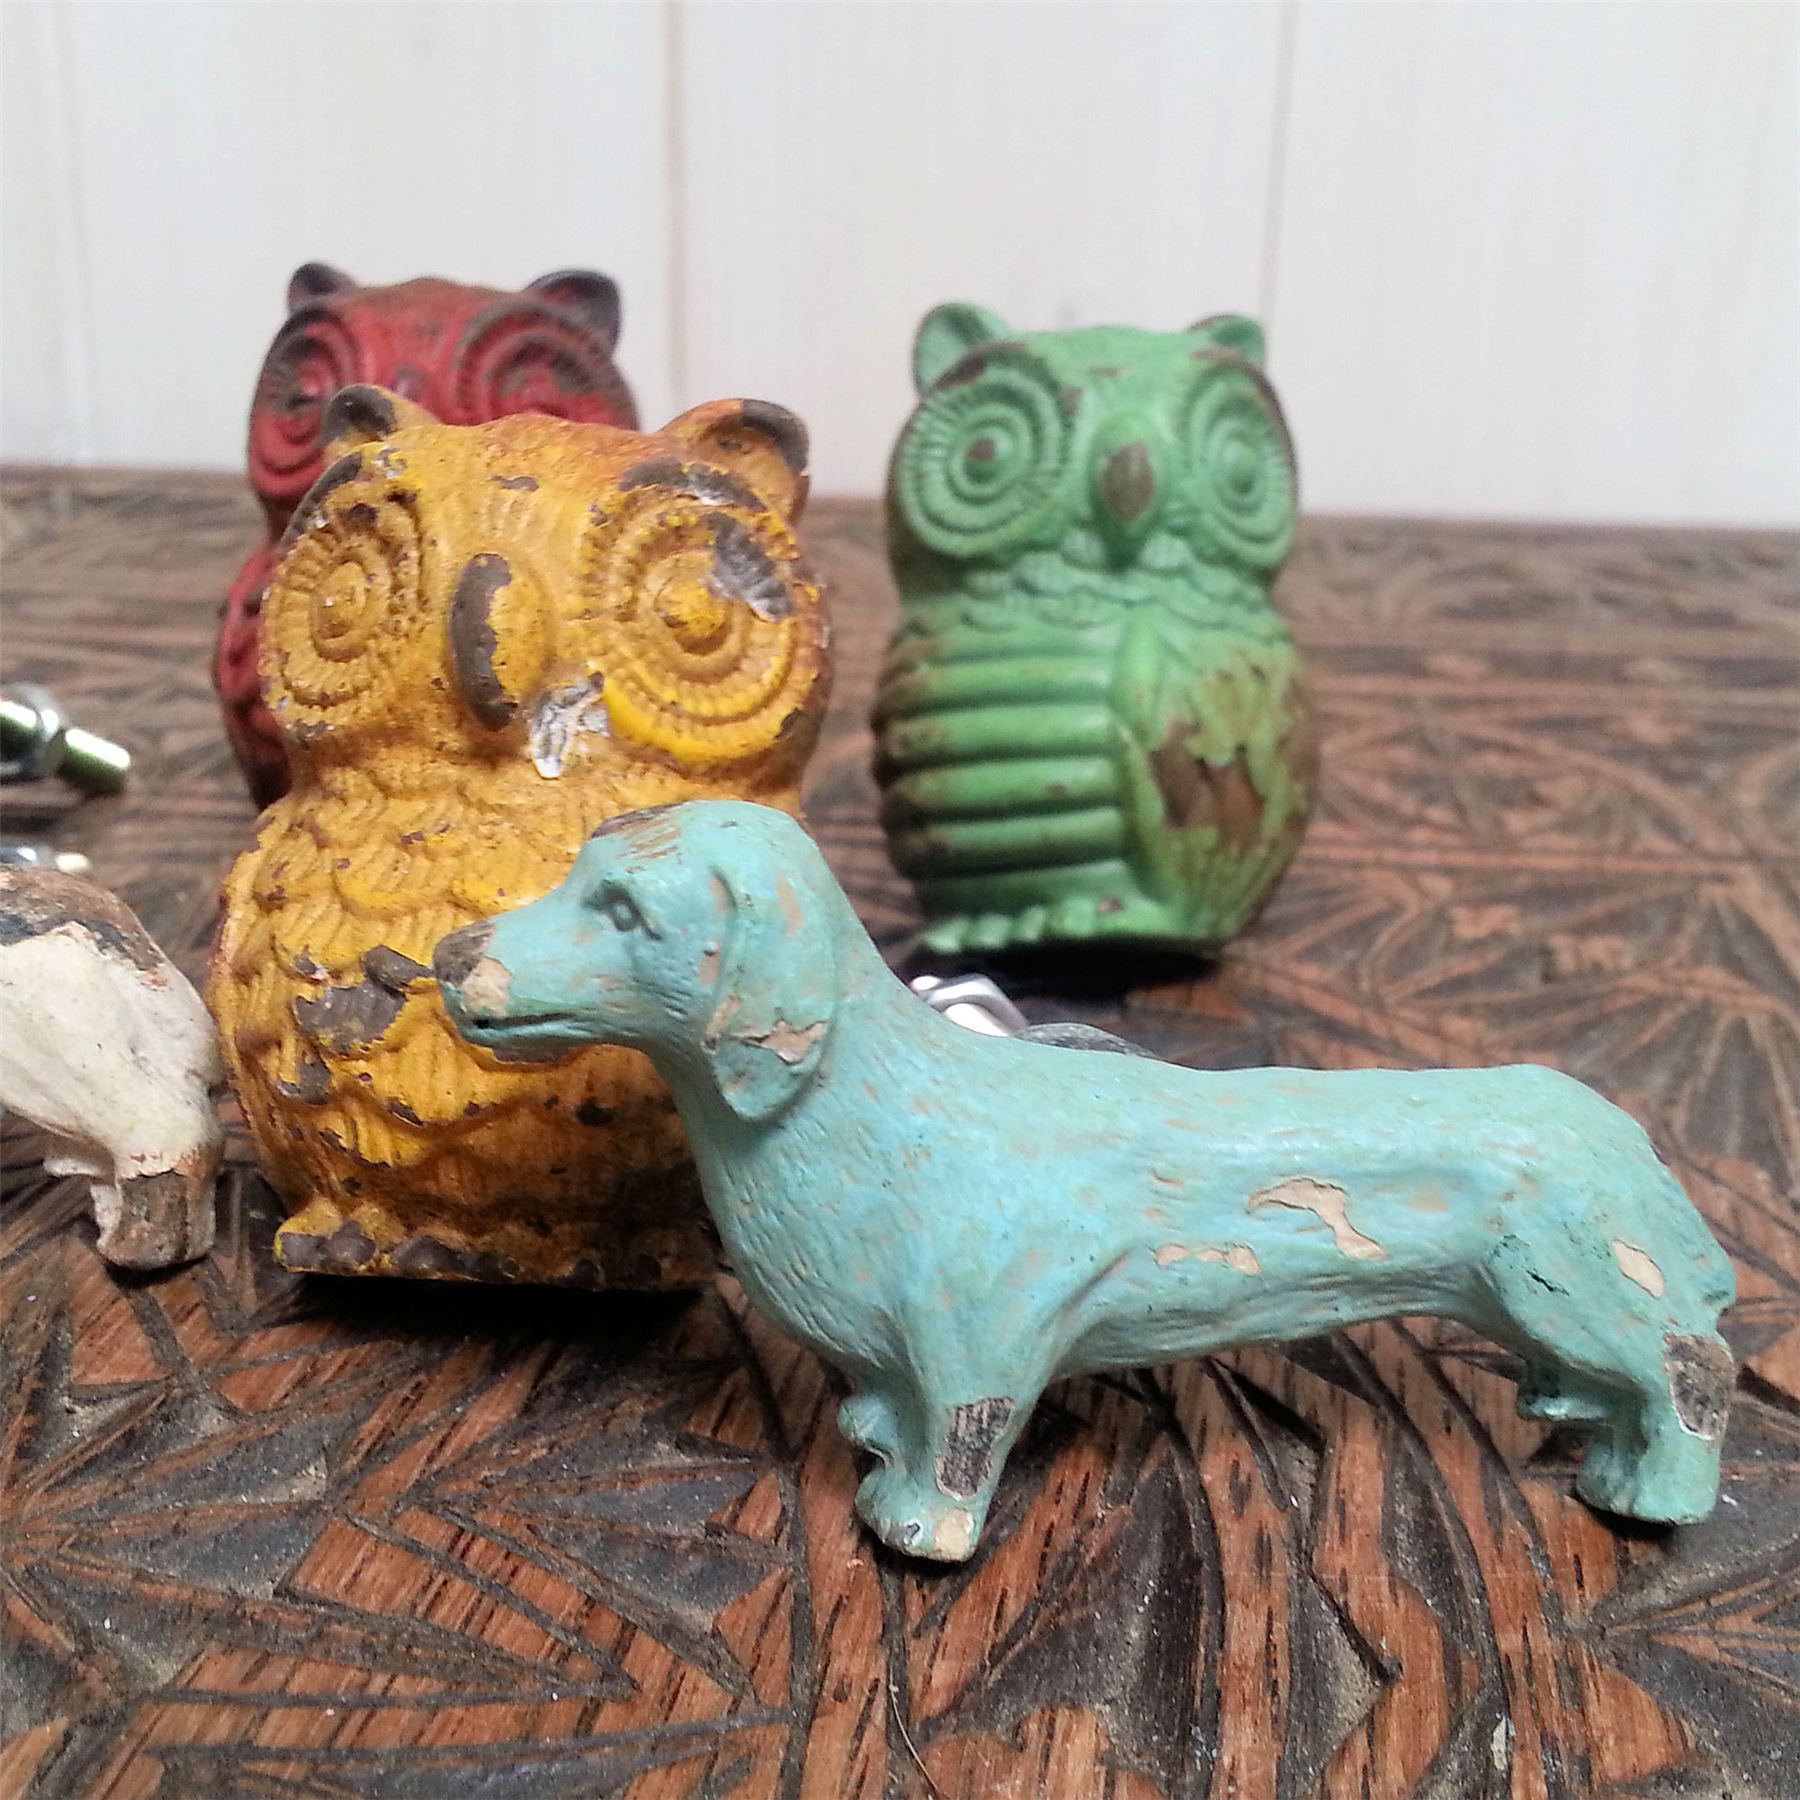 DOGS OWL SWALLOWS DOOR KNOBS DRAWER PULLS HANDLES METAL VTG PAINTED BIRDS DECOR